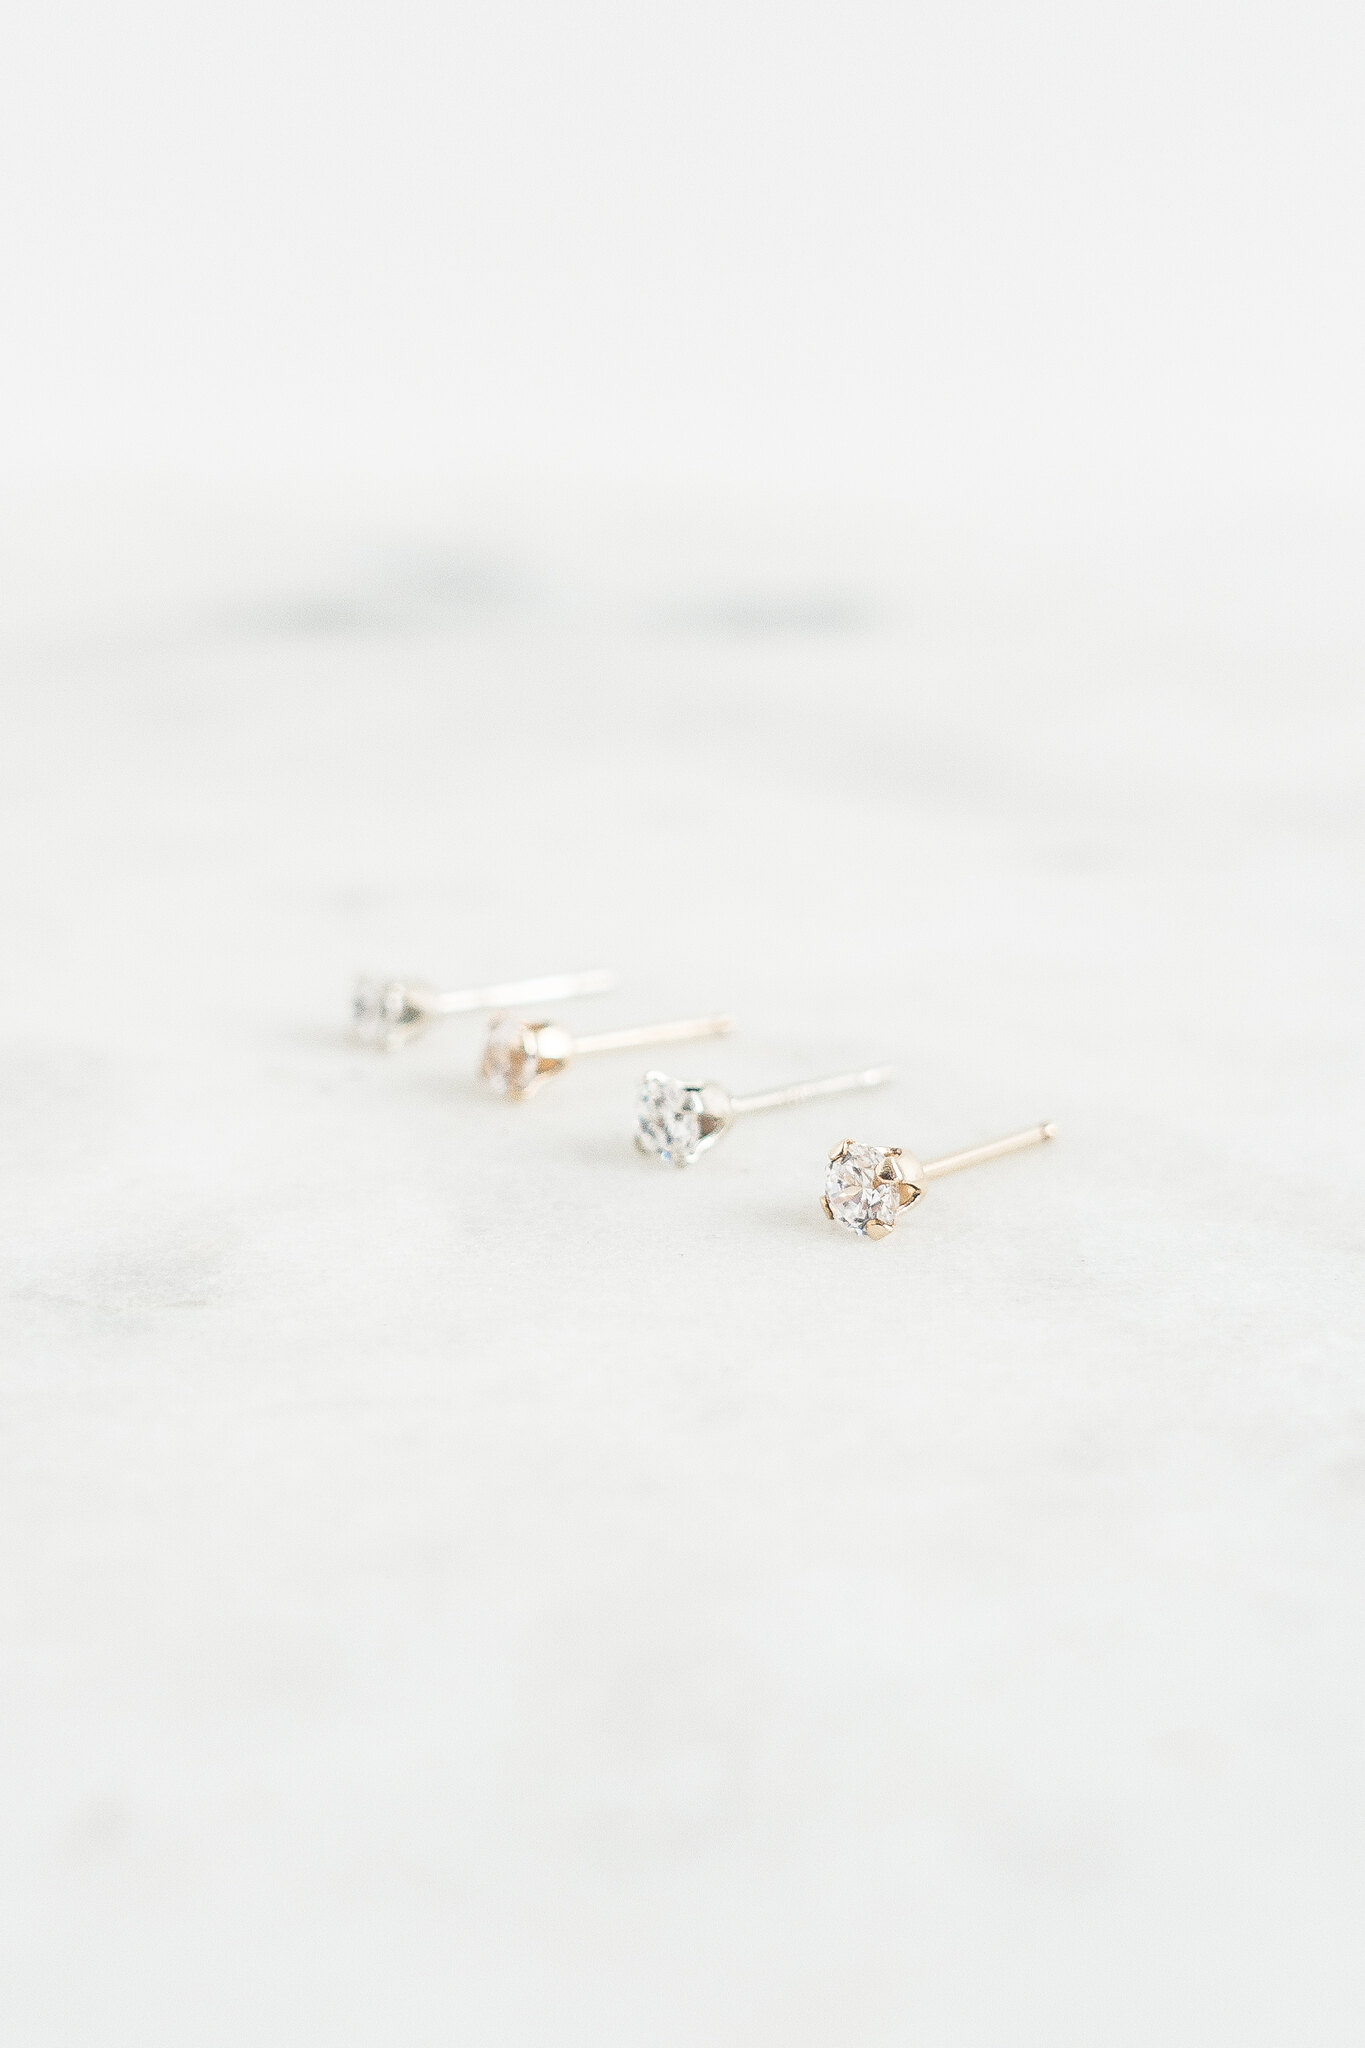 Minimalist Wedding Jewellery